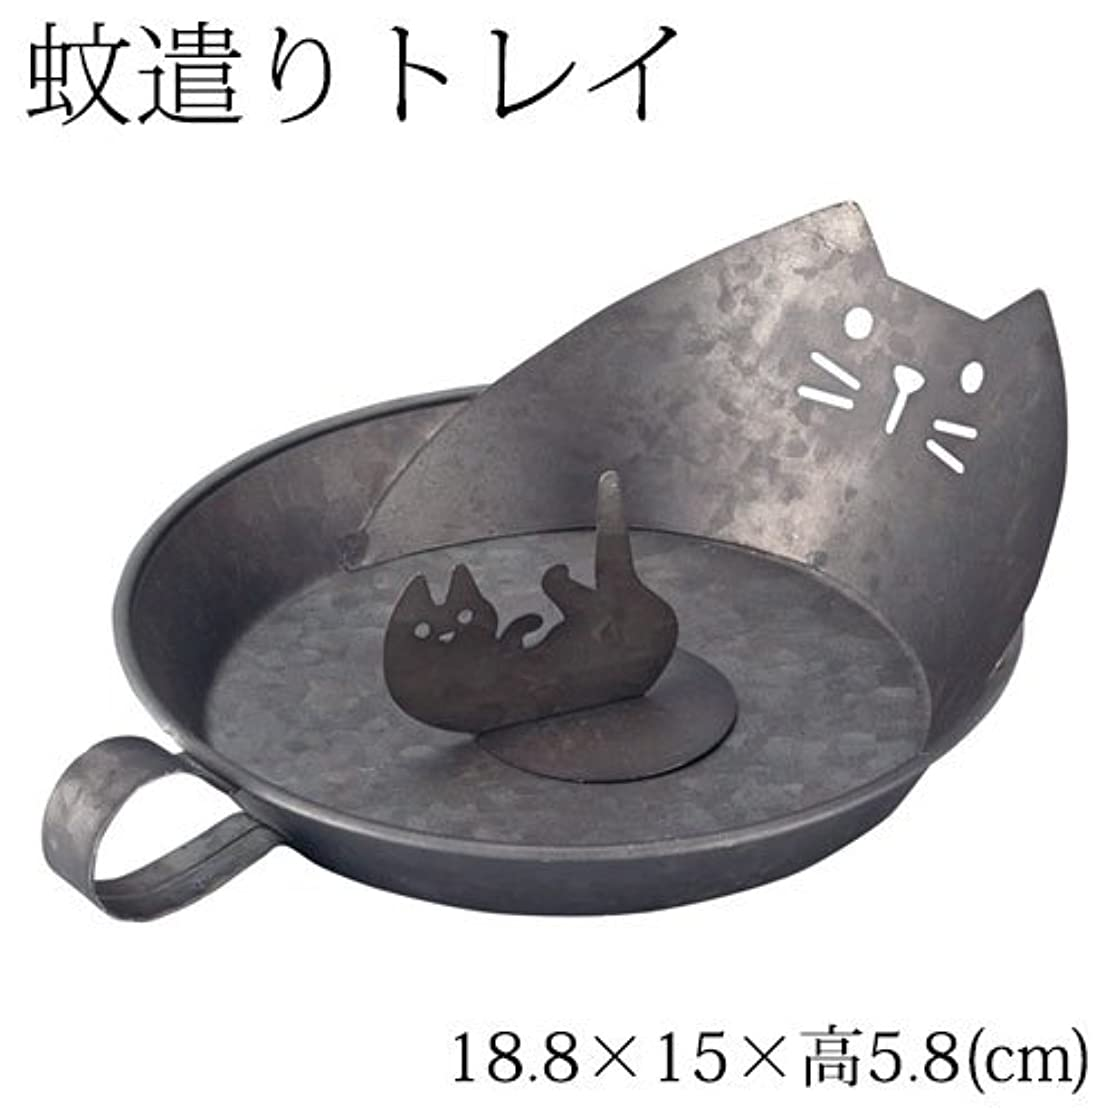 DECOLEアニマル蚊遣りトレイネコ (SK-13941)Mosquito coil tray